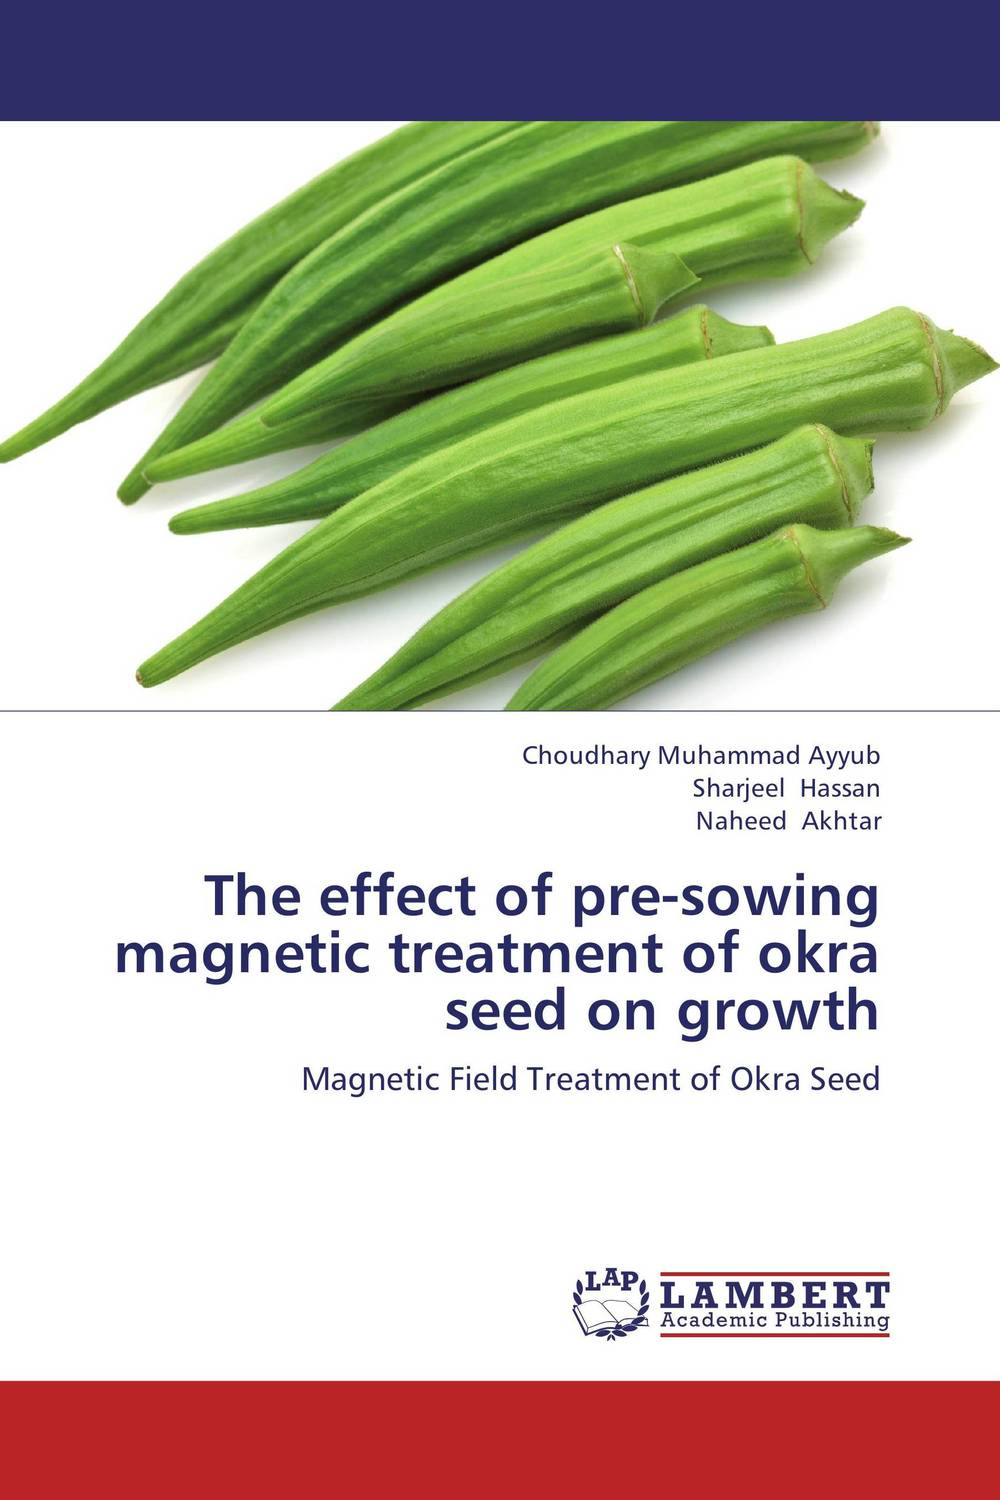 The effect of pre-sowing magnetic treatment of okra seed on growth usha rani m uma jyothi k and syam sundar reddy p study on effect of growth regulators and micronutrients on okra growth and yield of okra